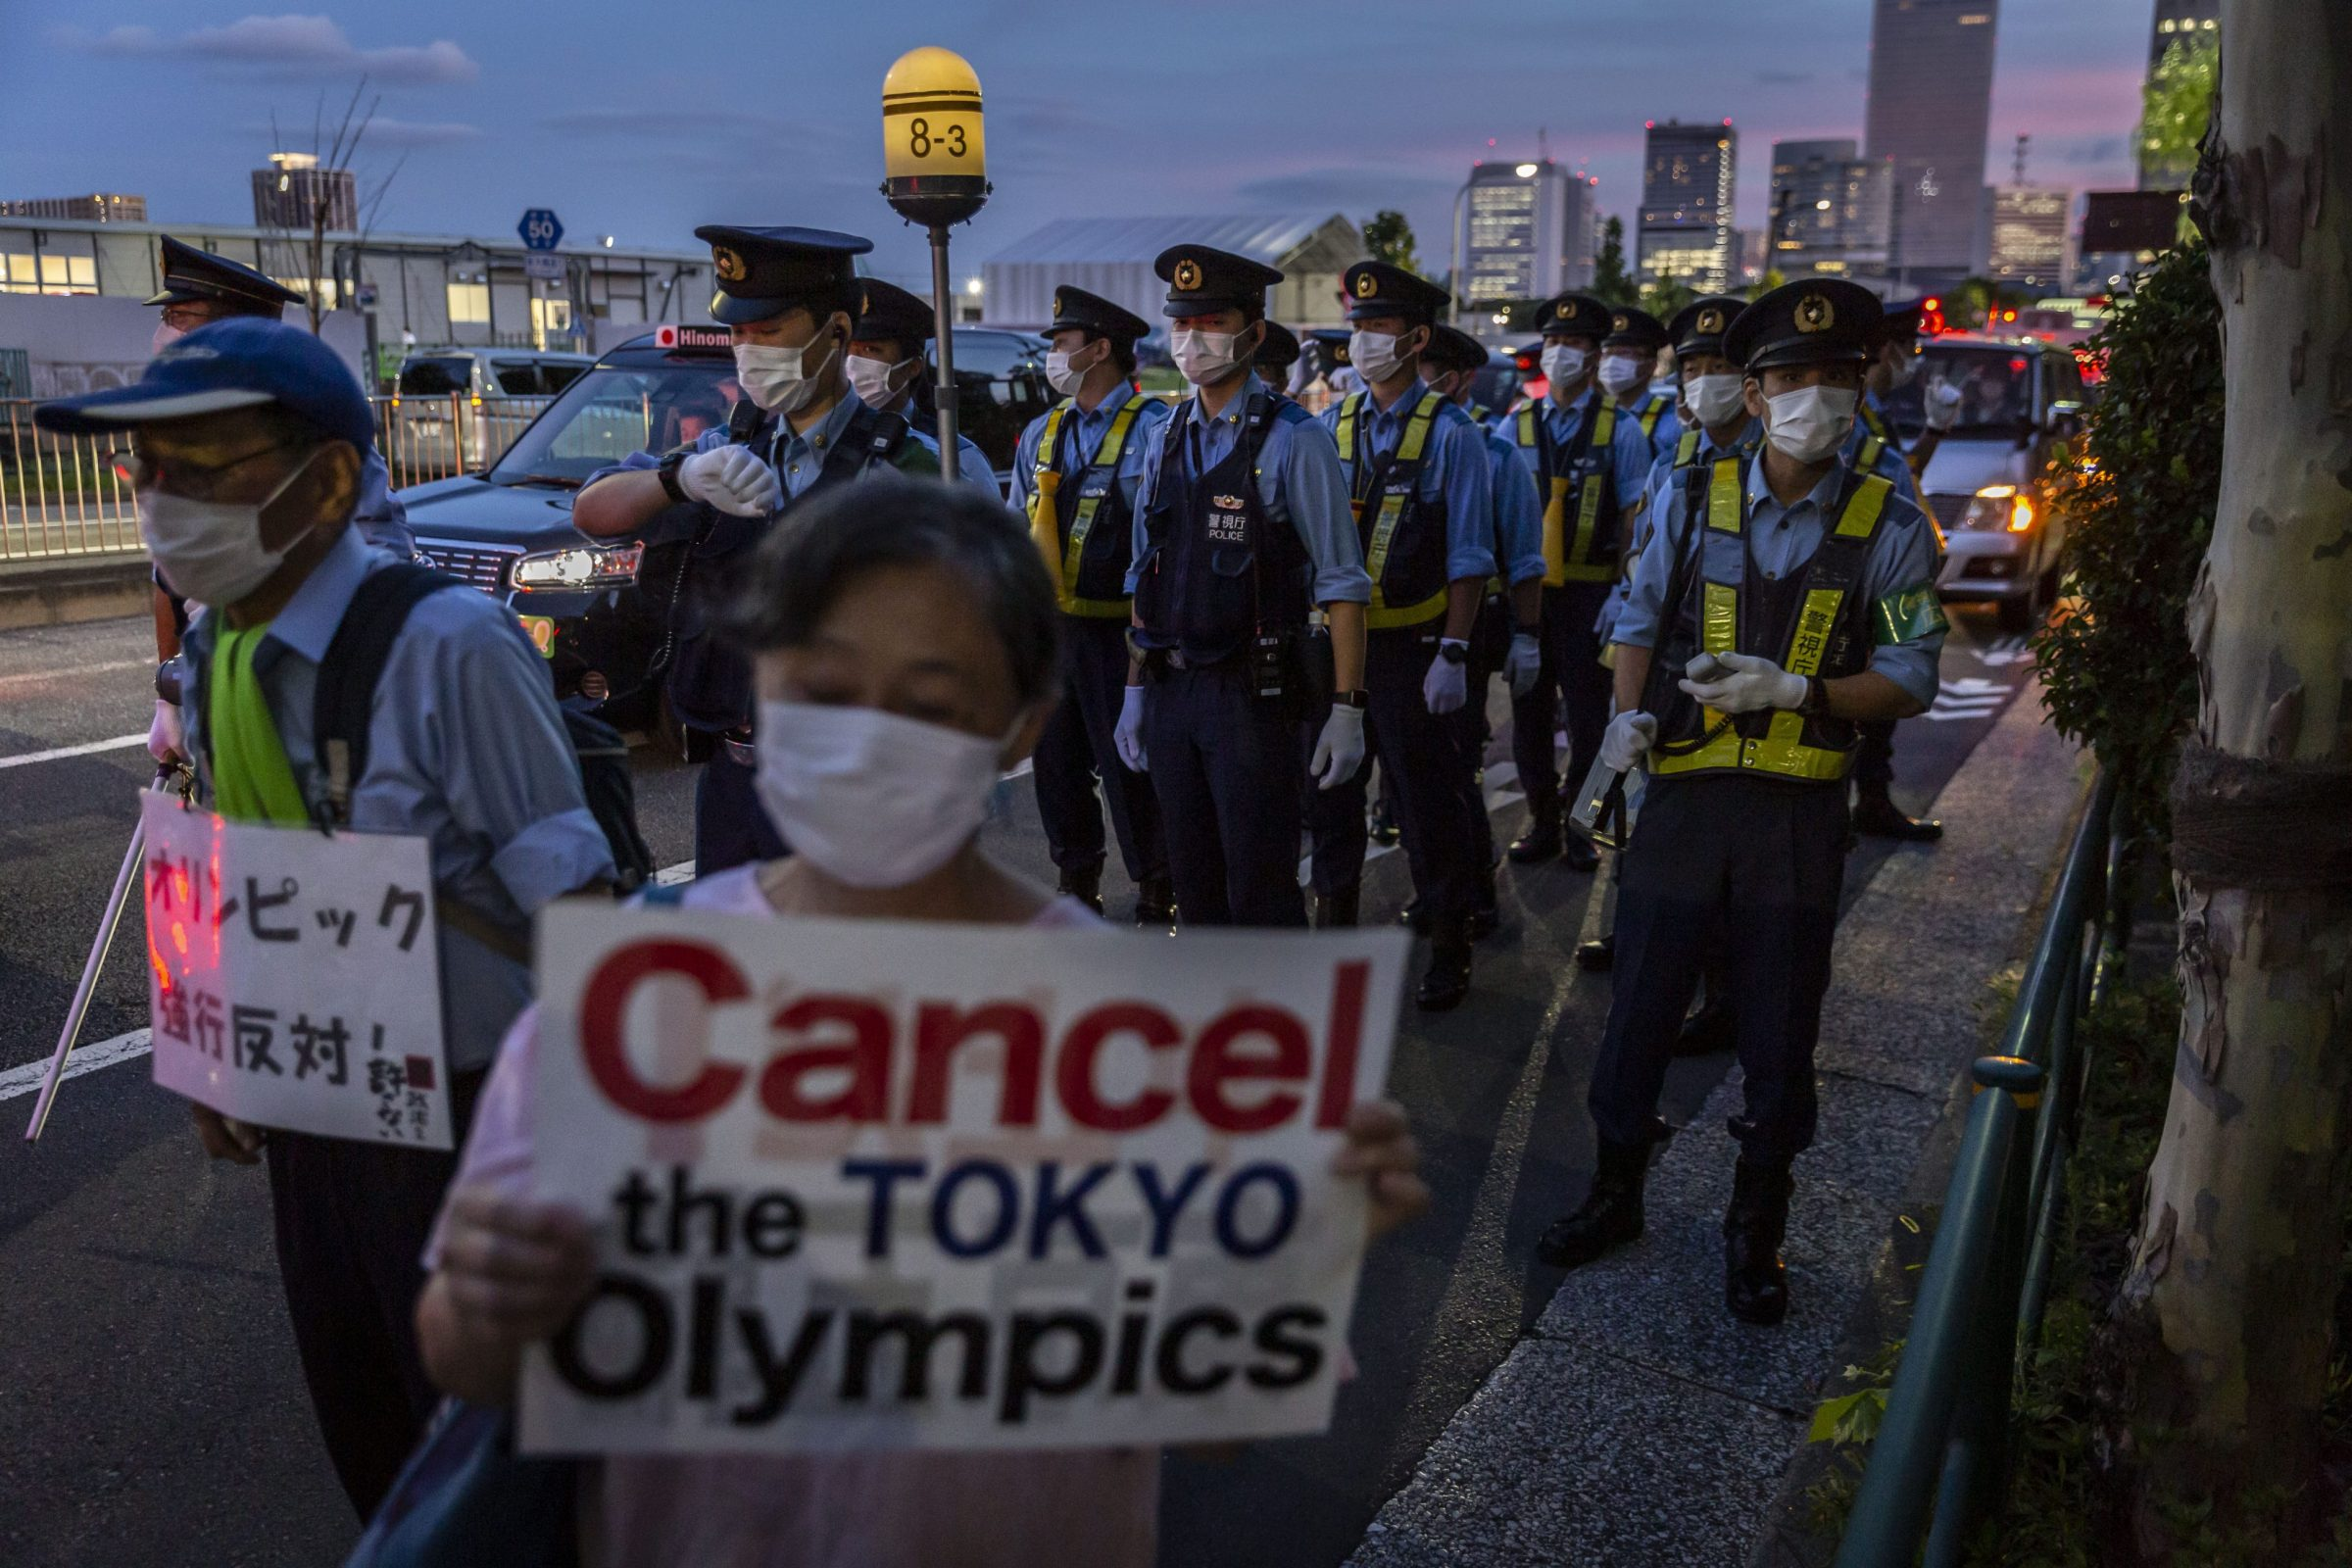 Police officers and protestors at a July protest against the Tokyo Olympics.